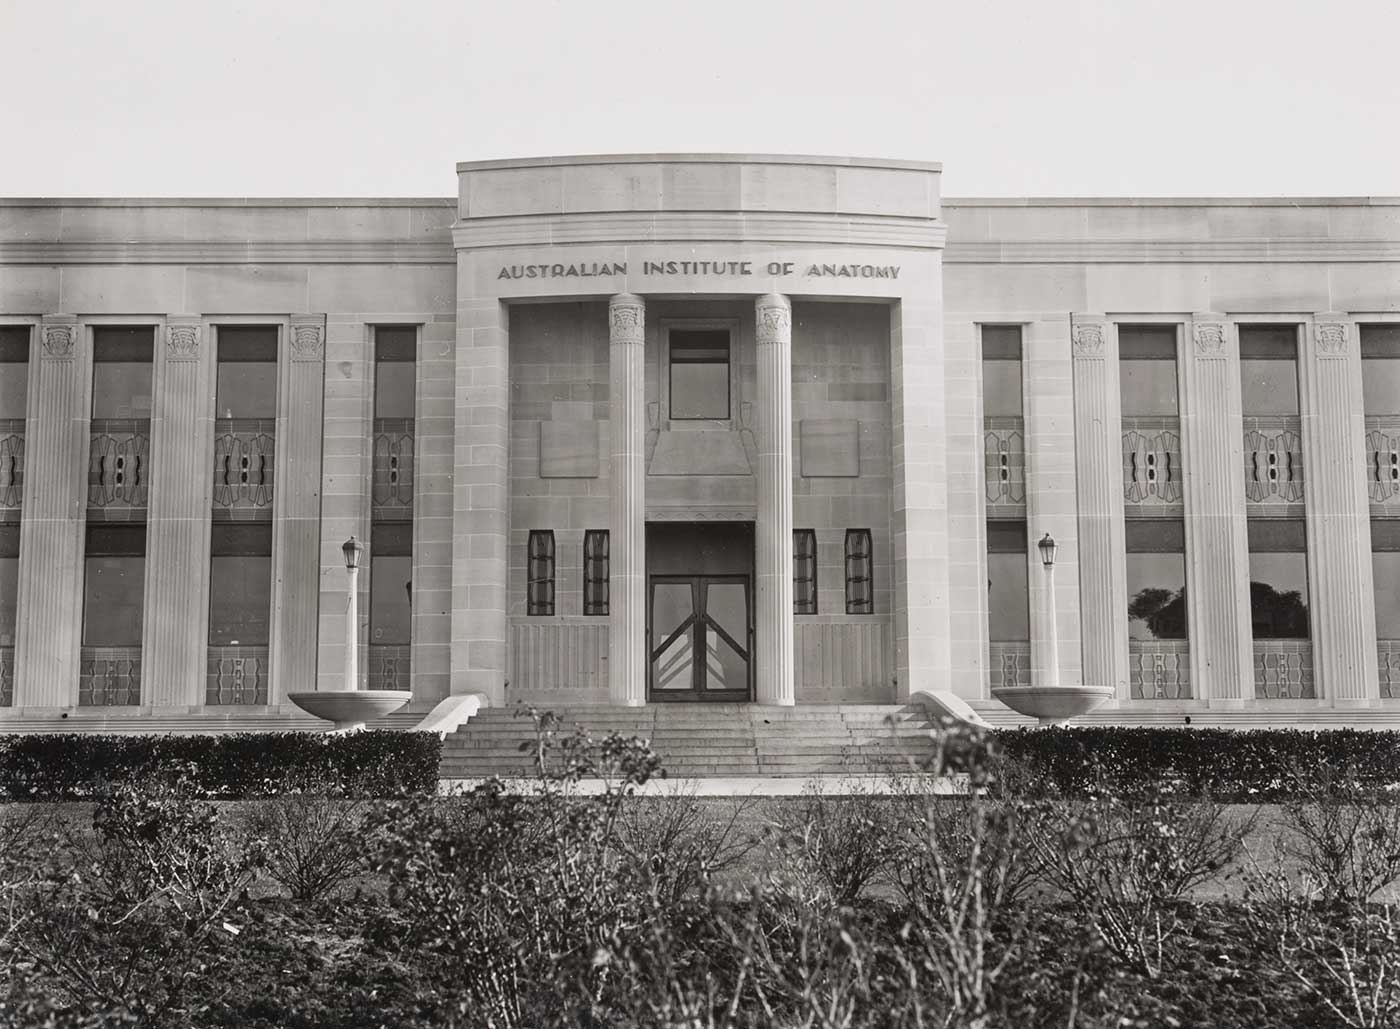 The Australian Institute of Anatomy building. The two storey building is seen from the front. Much of the imposing facade with its half-square columns and central entrance is visible. The columns have windows and designed panels between them. At the centre of the photograph are the main doors, whose dark timber is in contrast to the light tones of the sandstone facade. The doors are small in contrast to the two large columns in the round on either side of the entrance. None of the building's roof is visible as it has a flat roof which is hidden by the top of the facade. In the photograph foreground is a garden bed with some flower bushes.